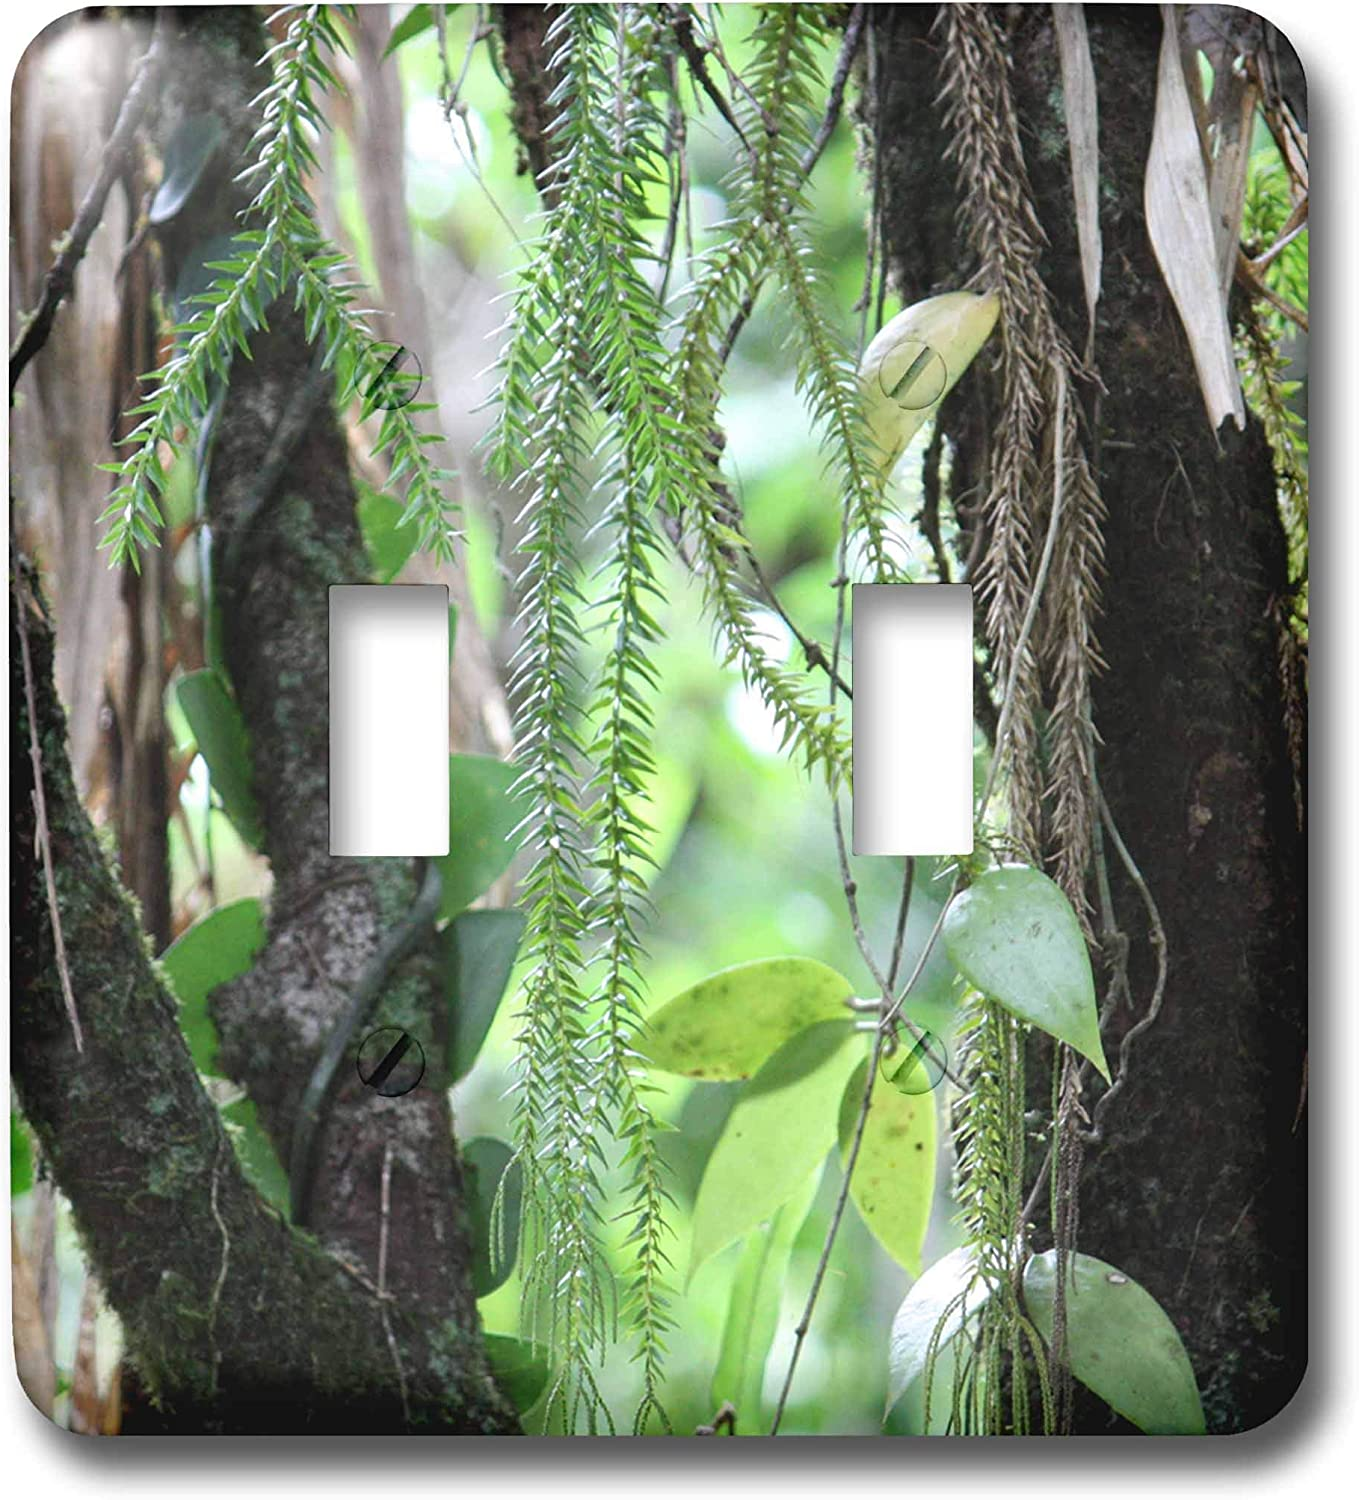 3drose Lsp 22805 2 Inside A Rainforest Tropical Queensland Australia Double Toggle Switch Switch Plates Amazon Com